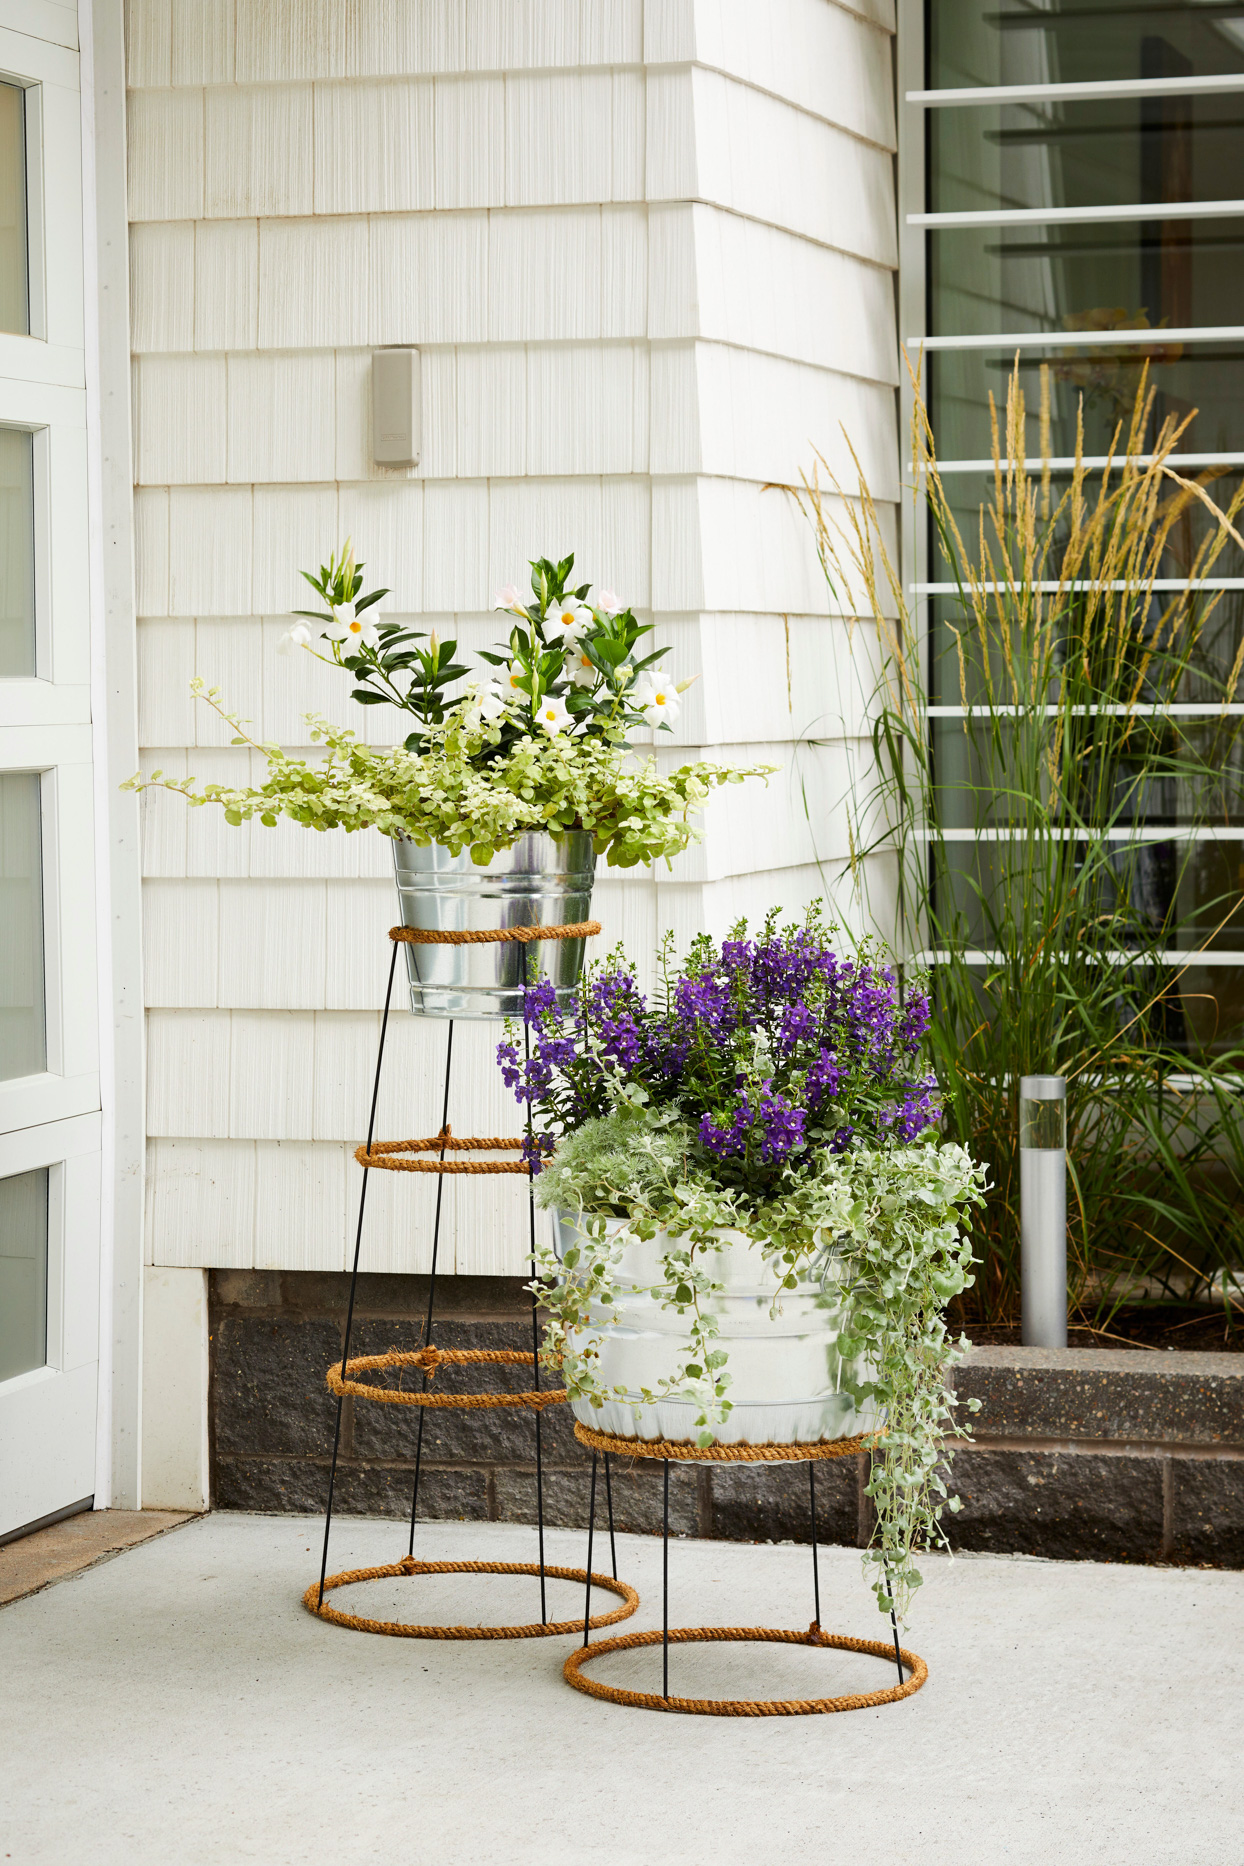 tapered circle planters tomato cage rope-wrapped farmhouse plant stands front stoop